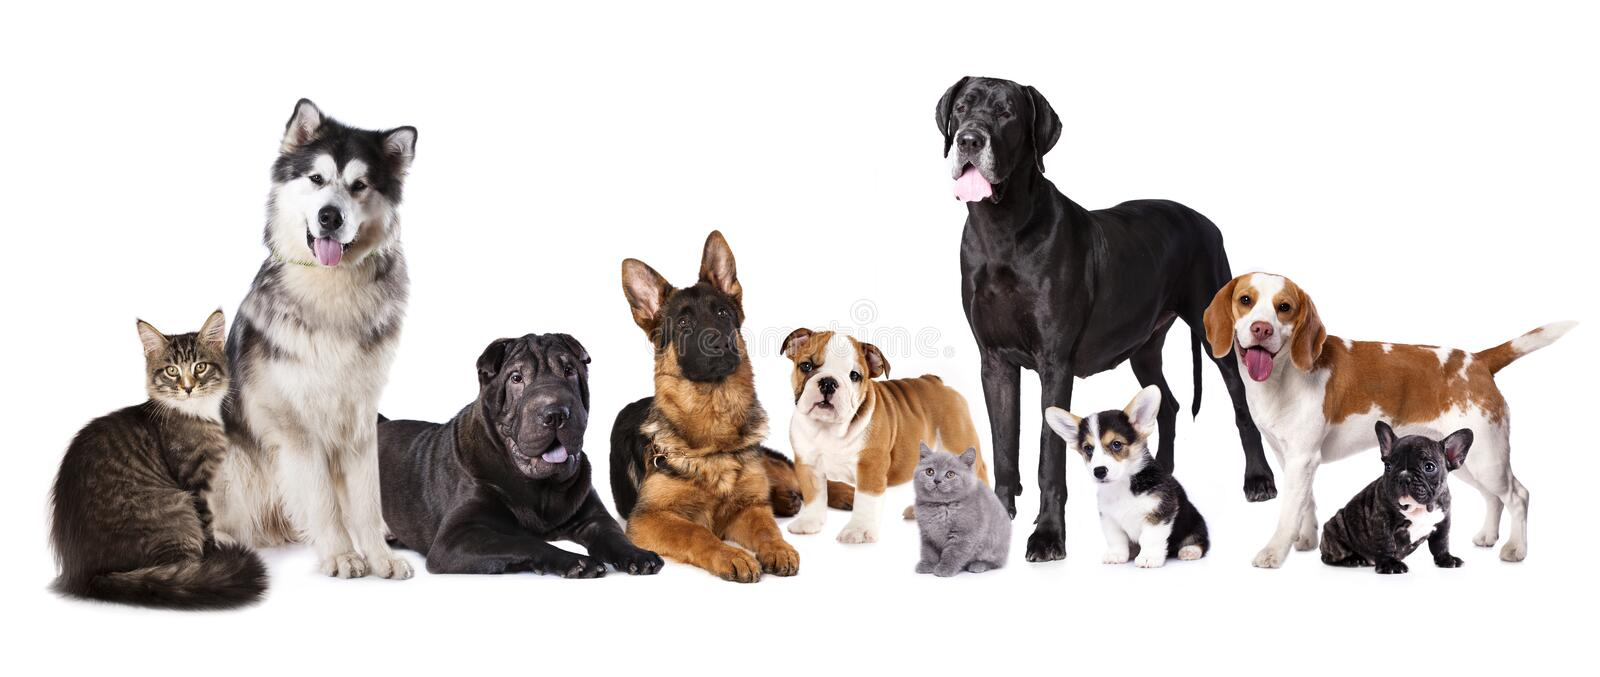 784 Group Dogs Cats Photos Free Royalty Free Stock Photos From Dreamstime